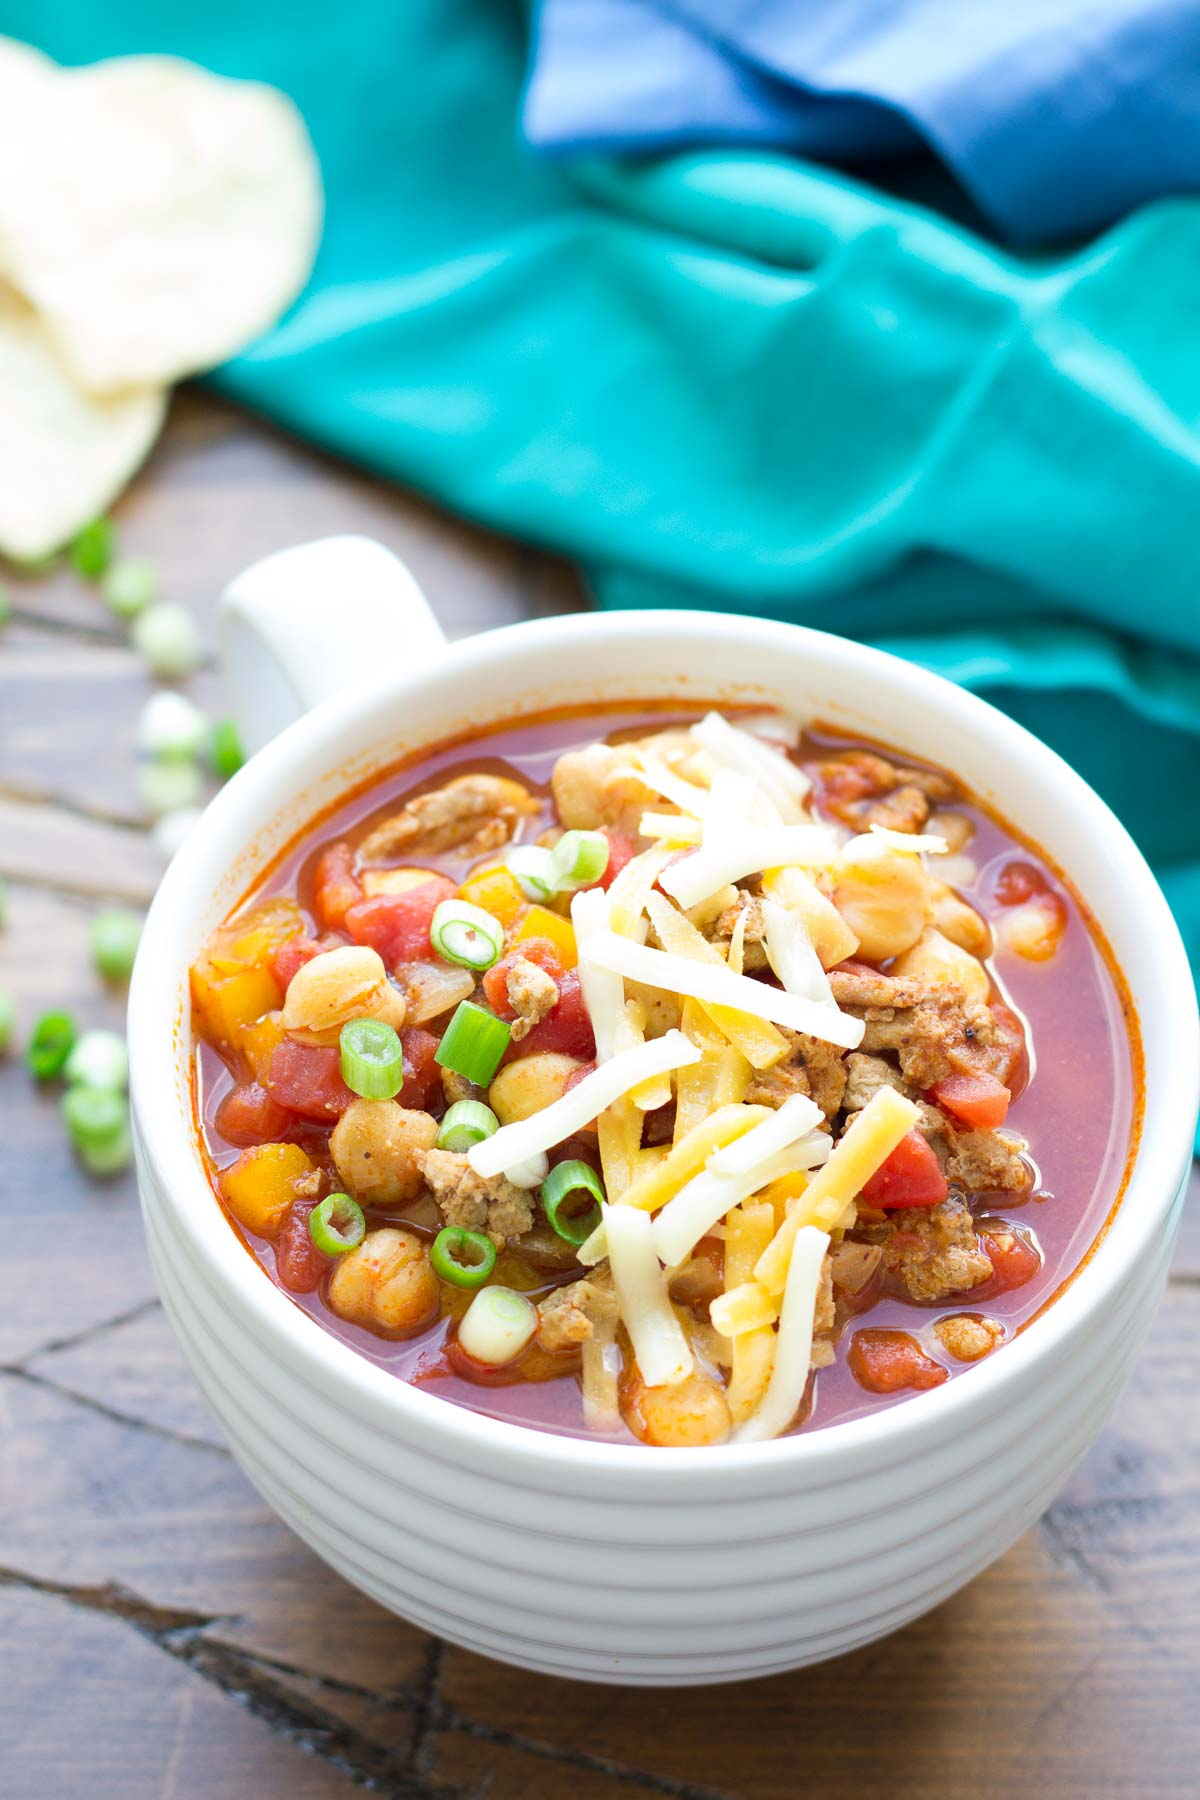 Slow Cooker Turkey Chickpea Chili - our favorite healthy chili recipe is packed with protein and so easy to make in your crock pot!